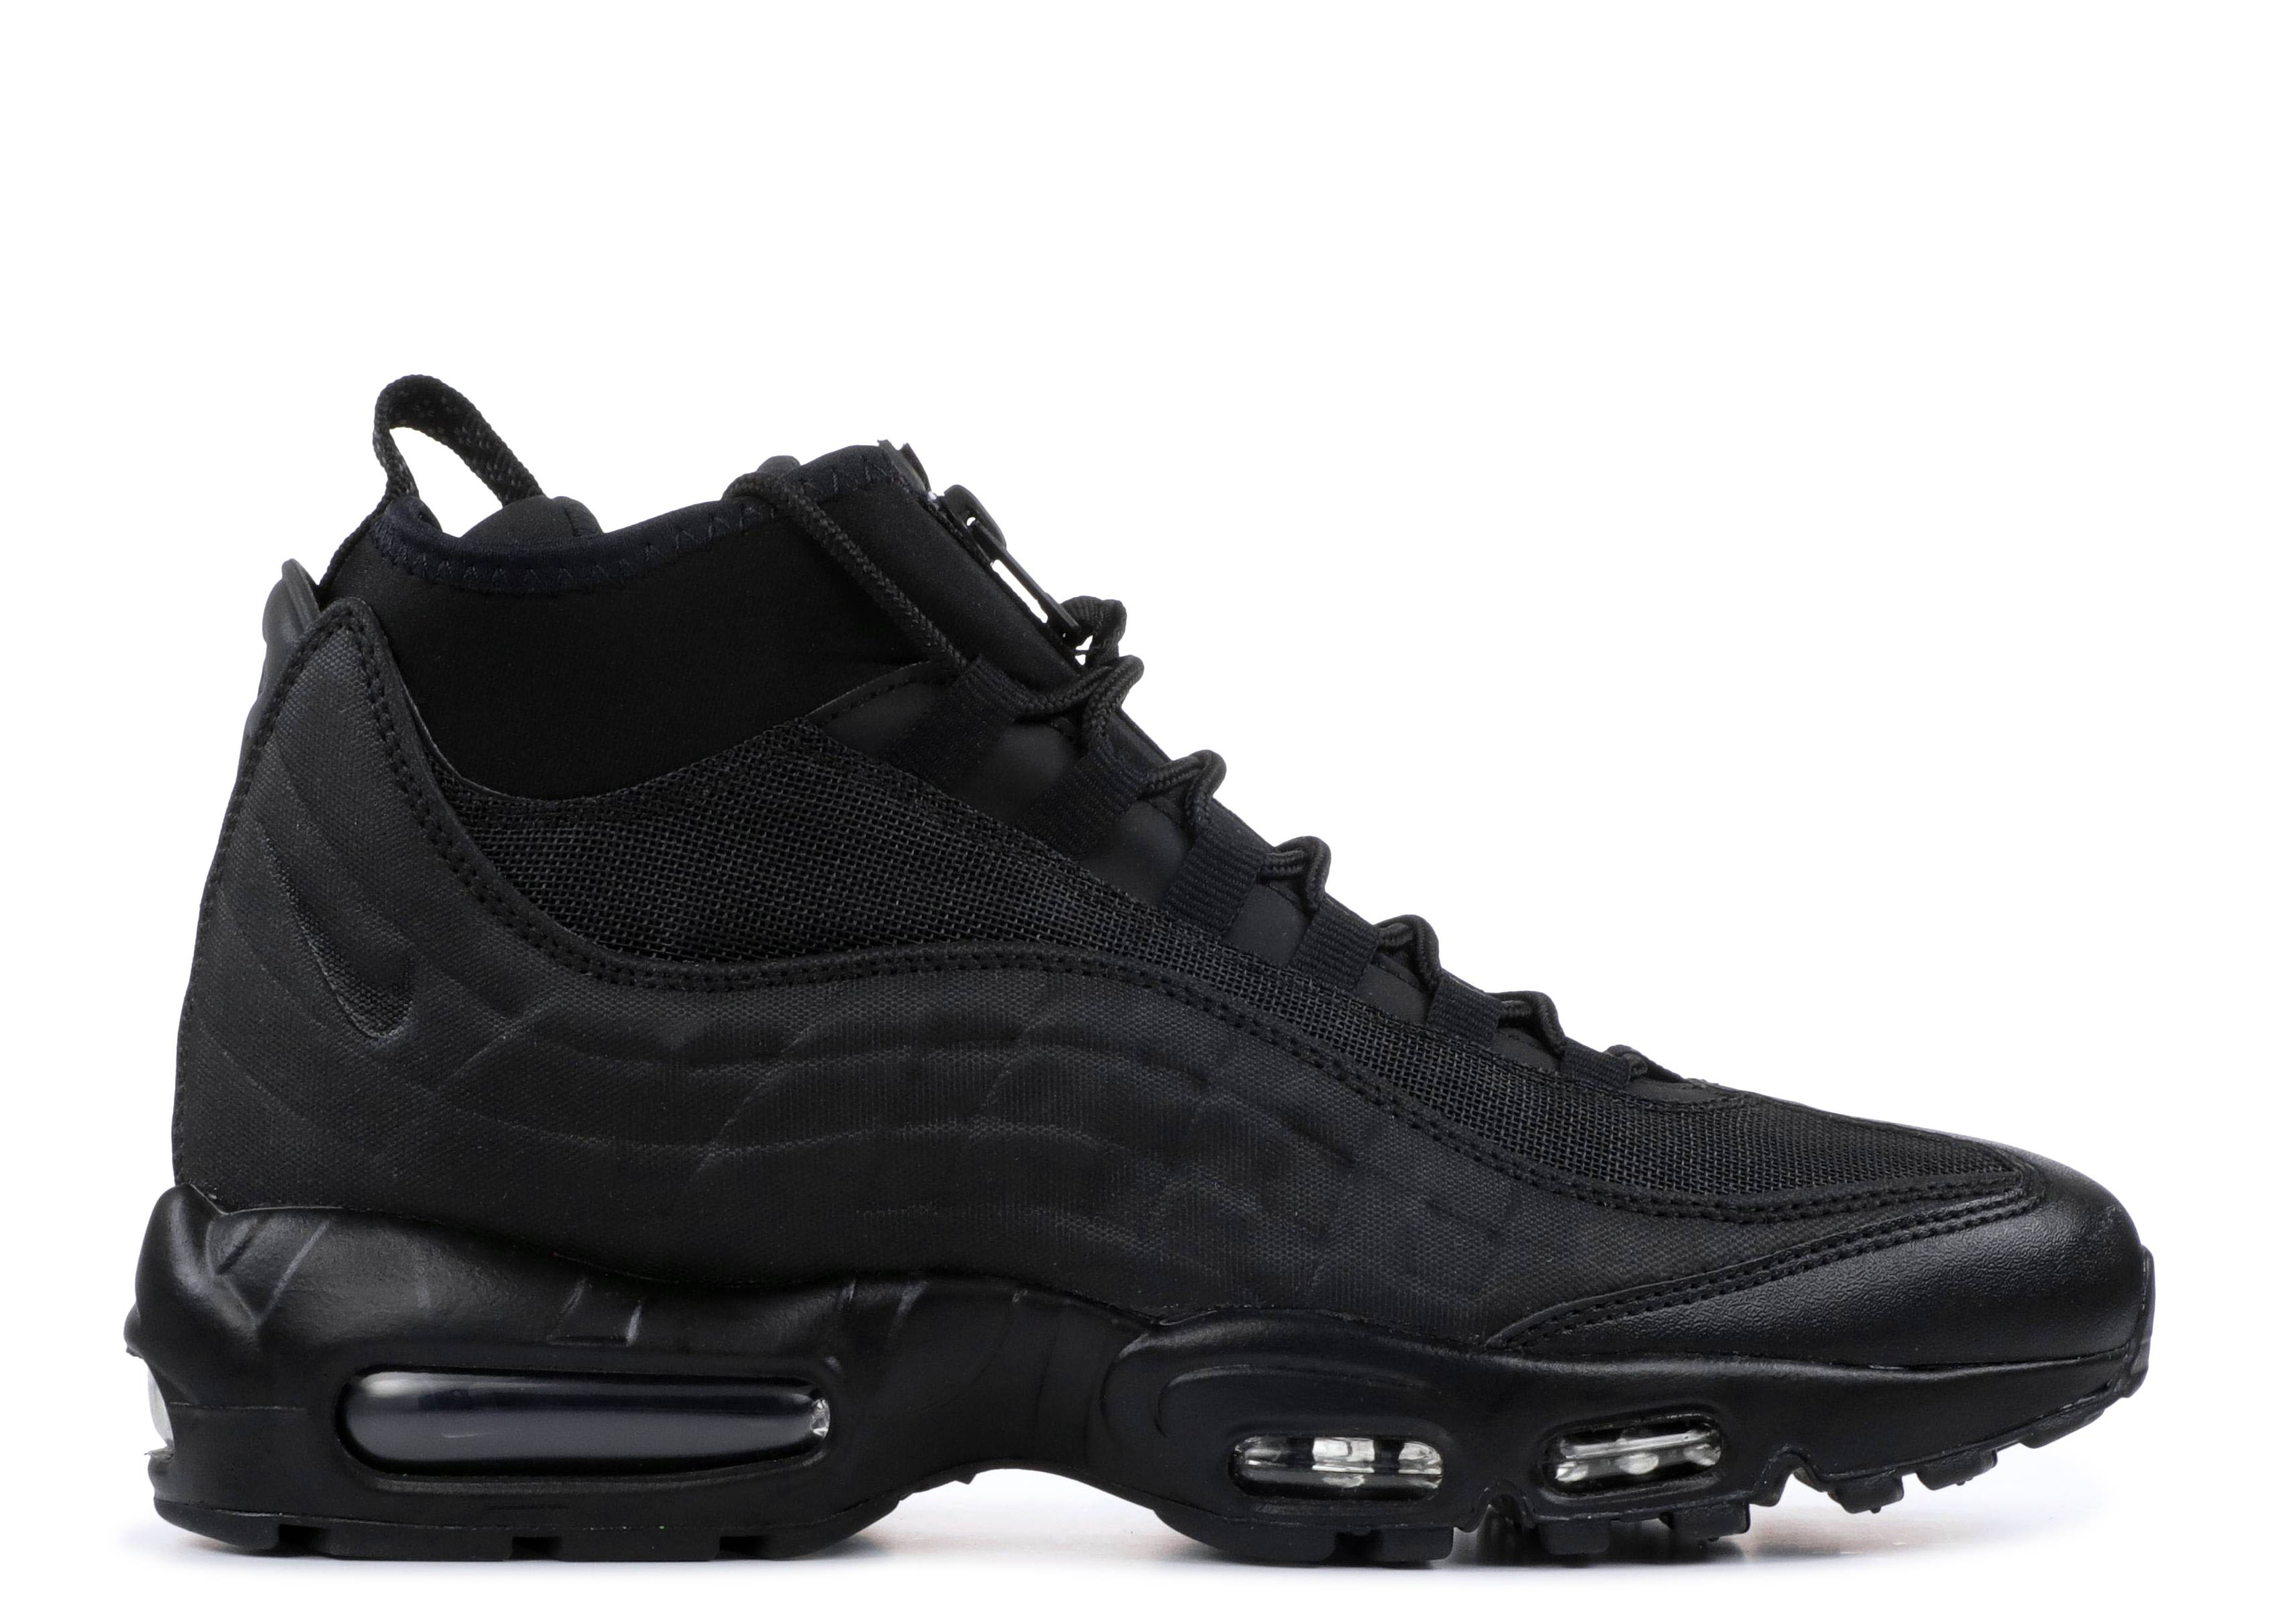 reputable site 1567b ecea8 nike air max 95 sneakerboot